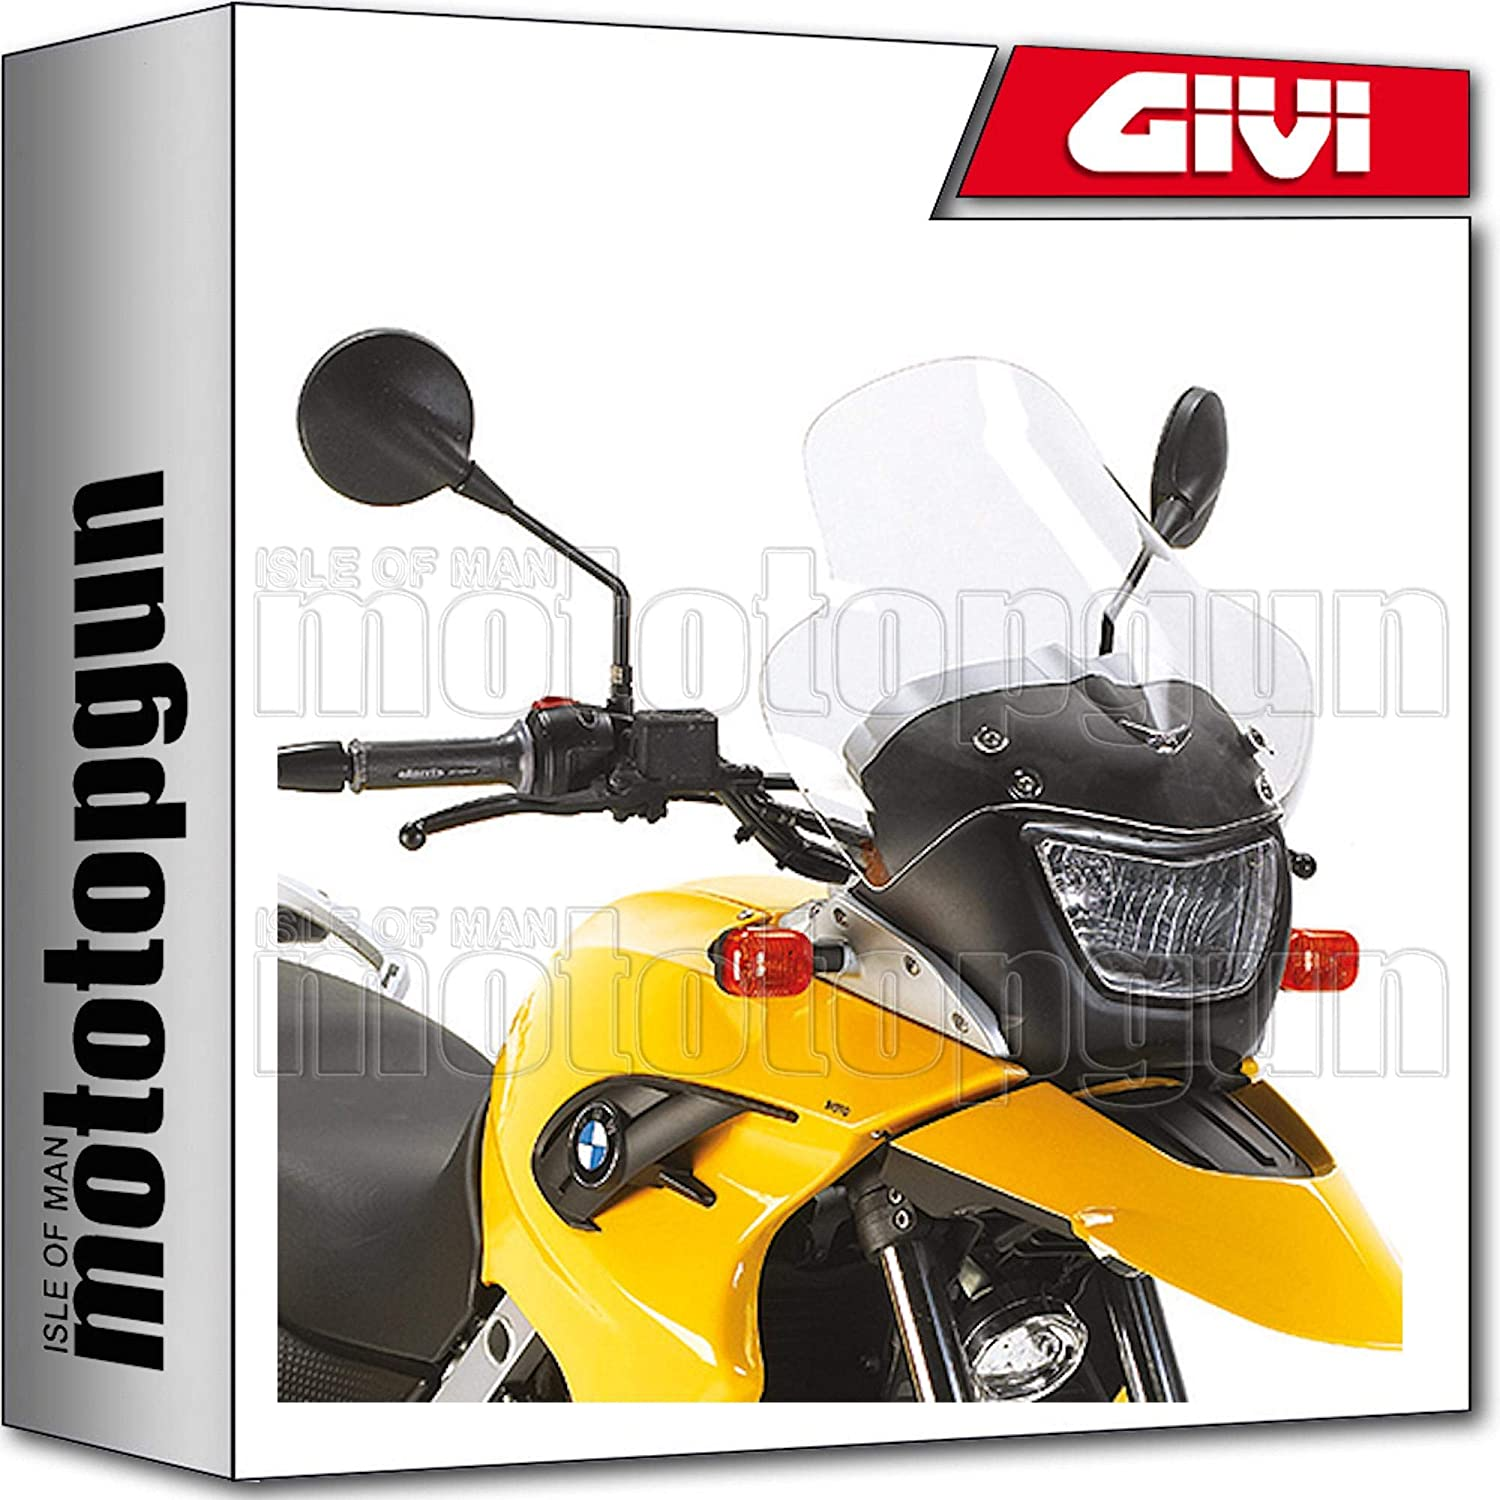 GIVI WINDSCHILD D331ST KOMPATIBEL MIT BMW F 650 GS 2004 04 2005 05 2006 06 2007 07